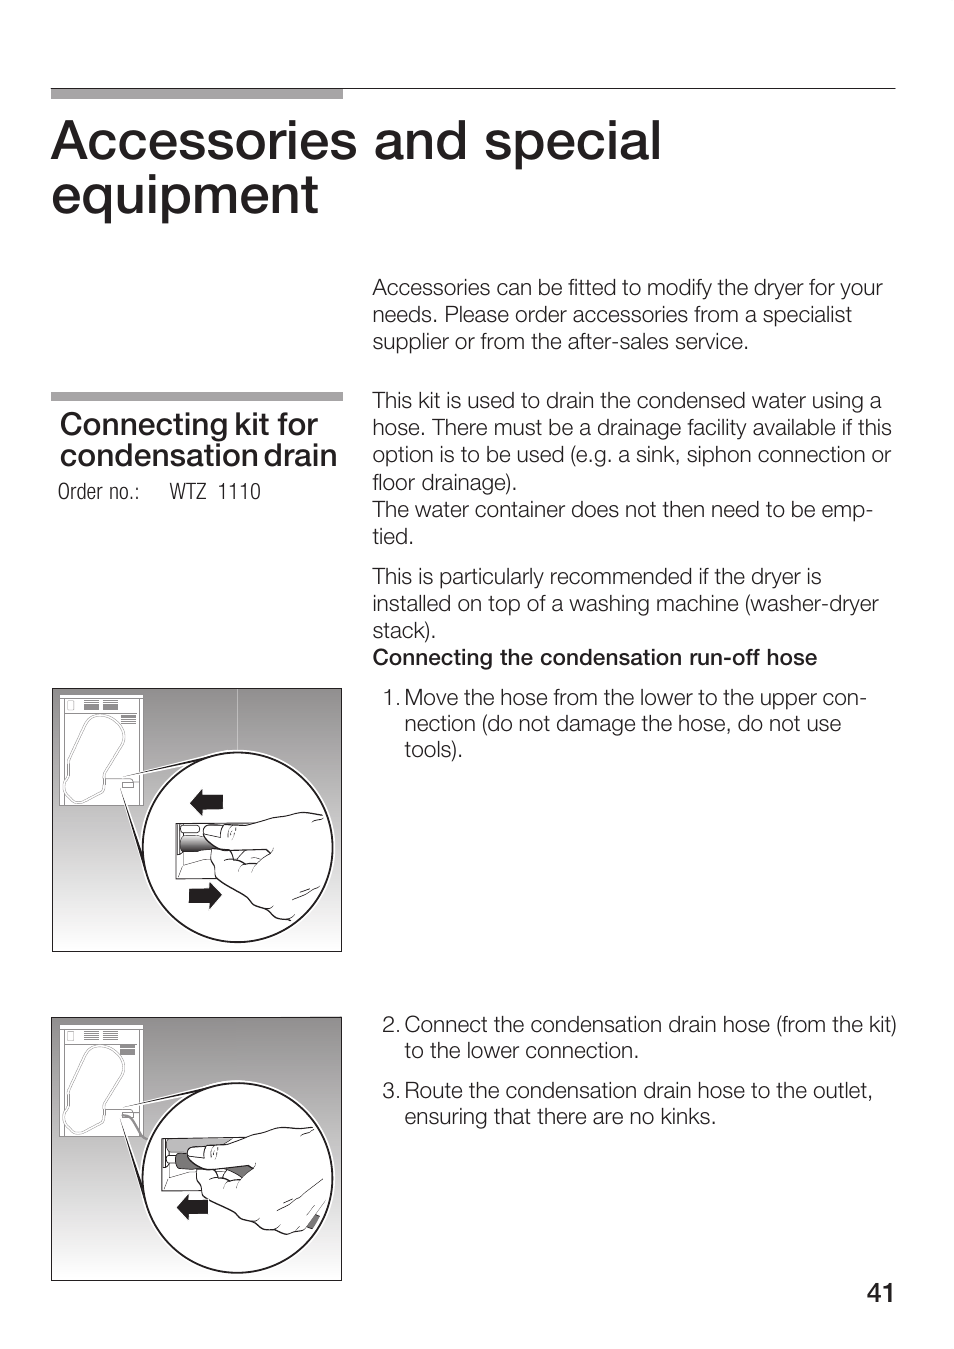 Accessories and special equipment, Connecting kit for condensation drain    Bosch Maxx WTL 6500 User Manual   Page 41 / 48